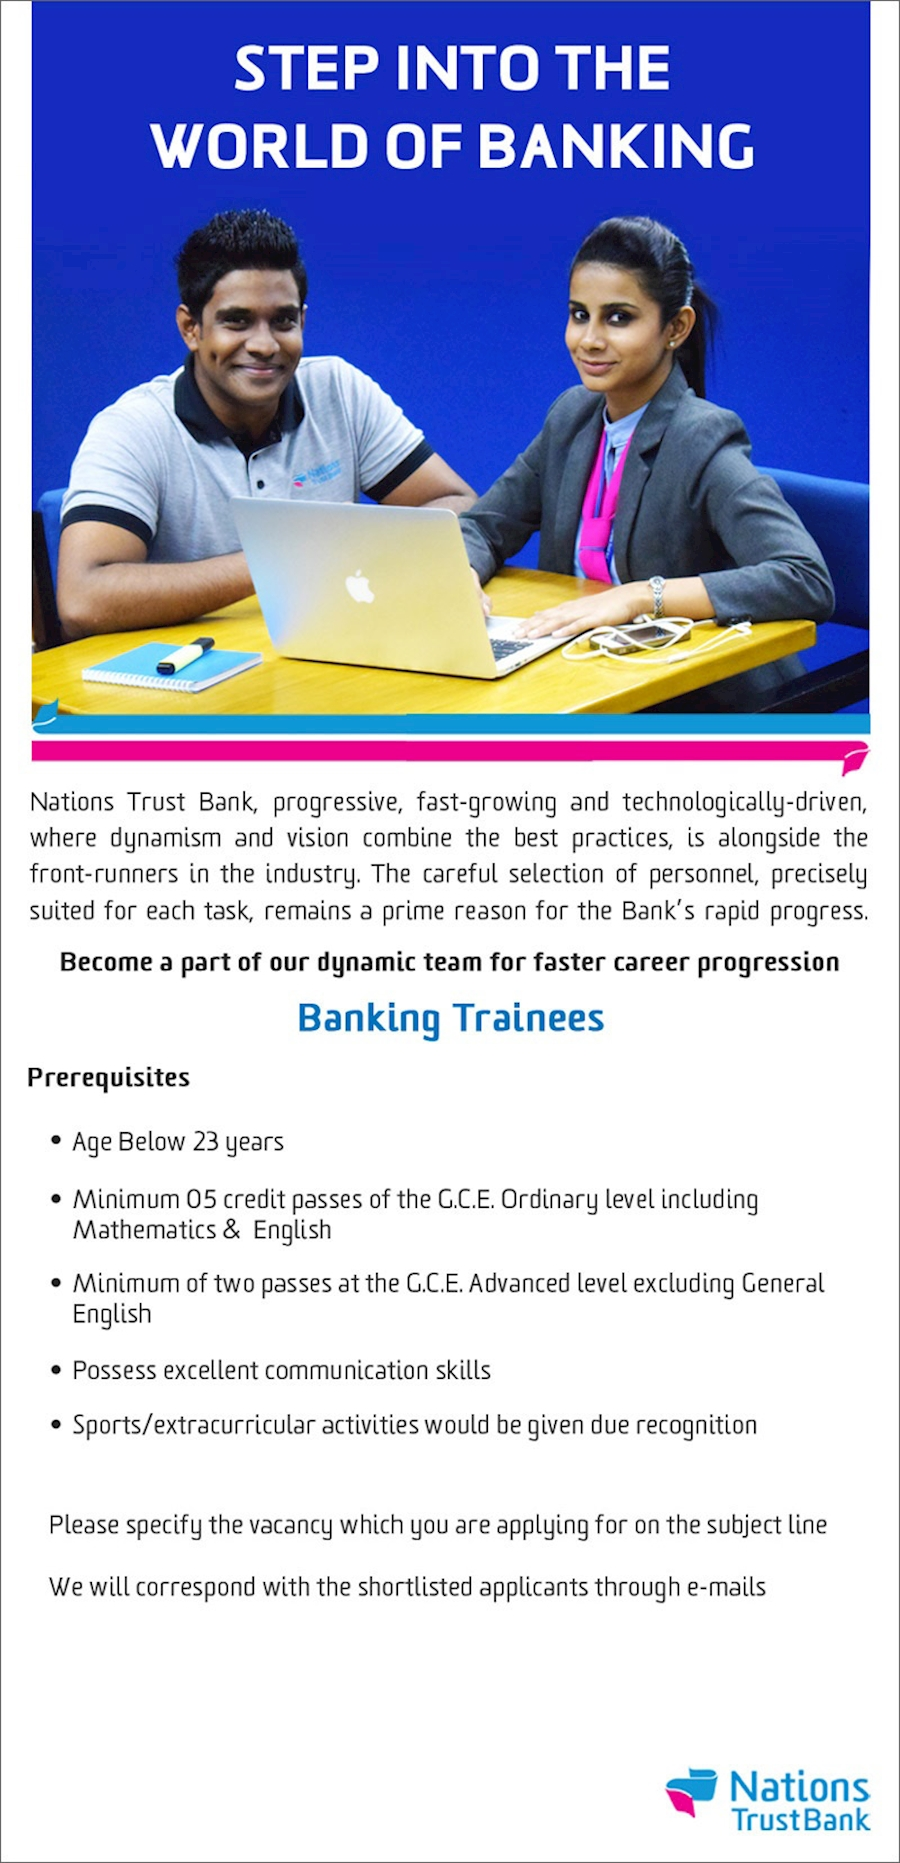 Banking Trainees